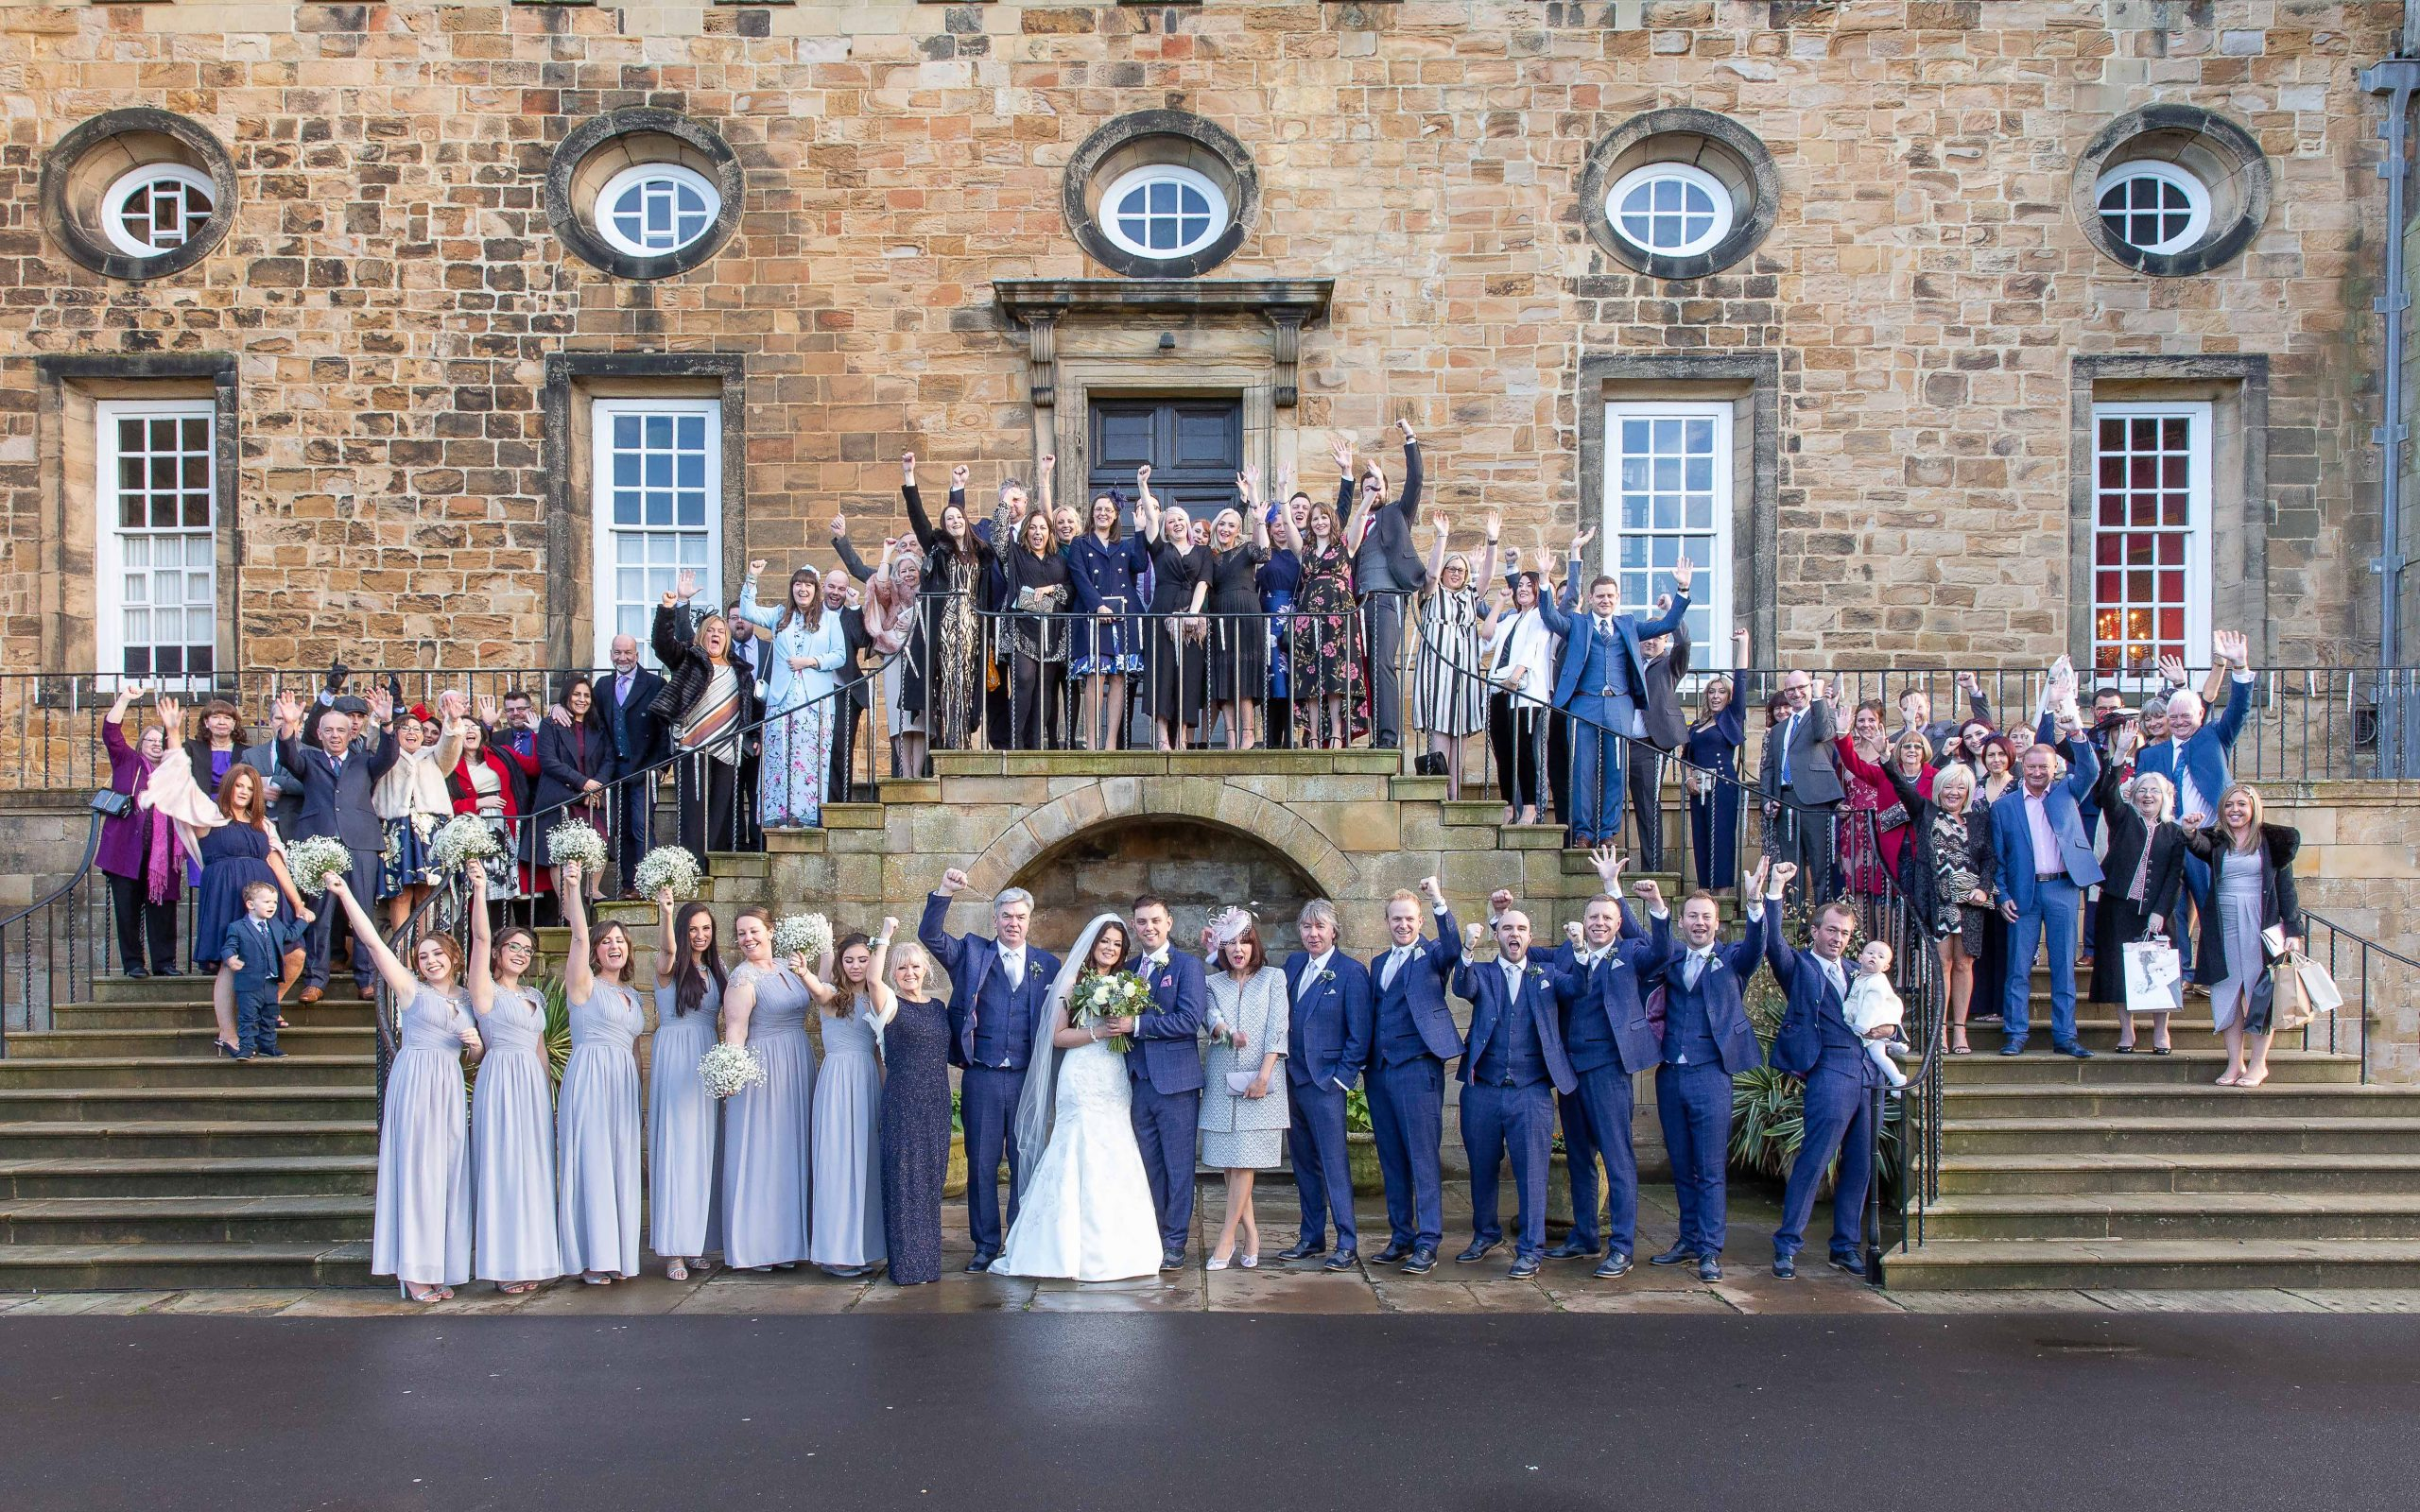 Group wedding photo at Lumley Castle